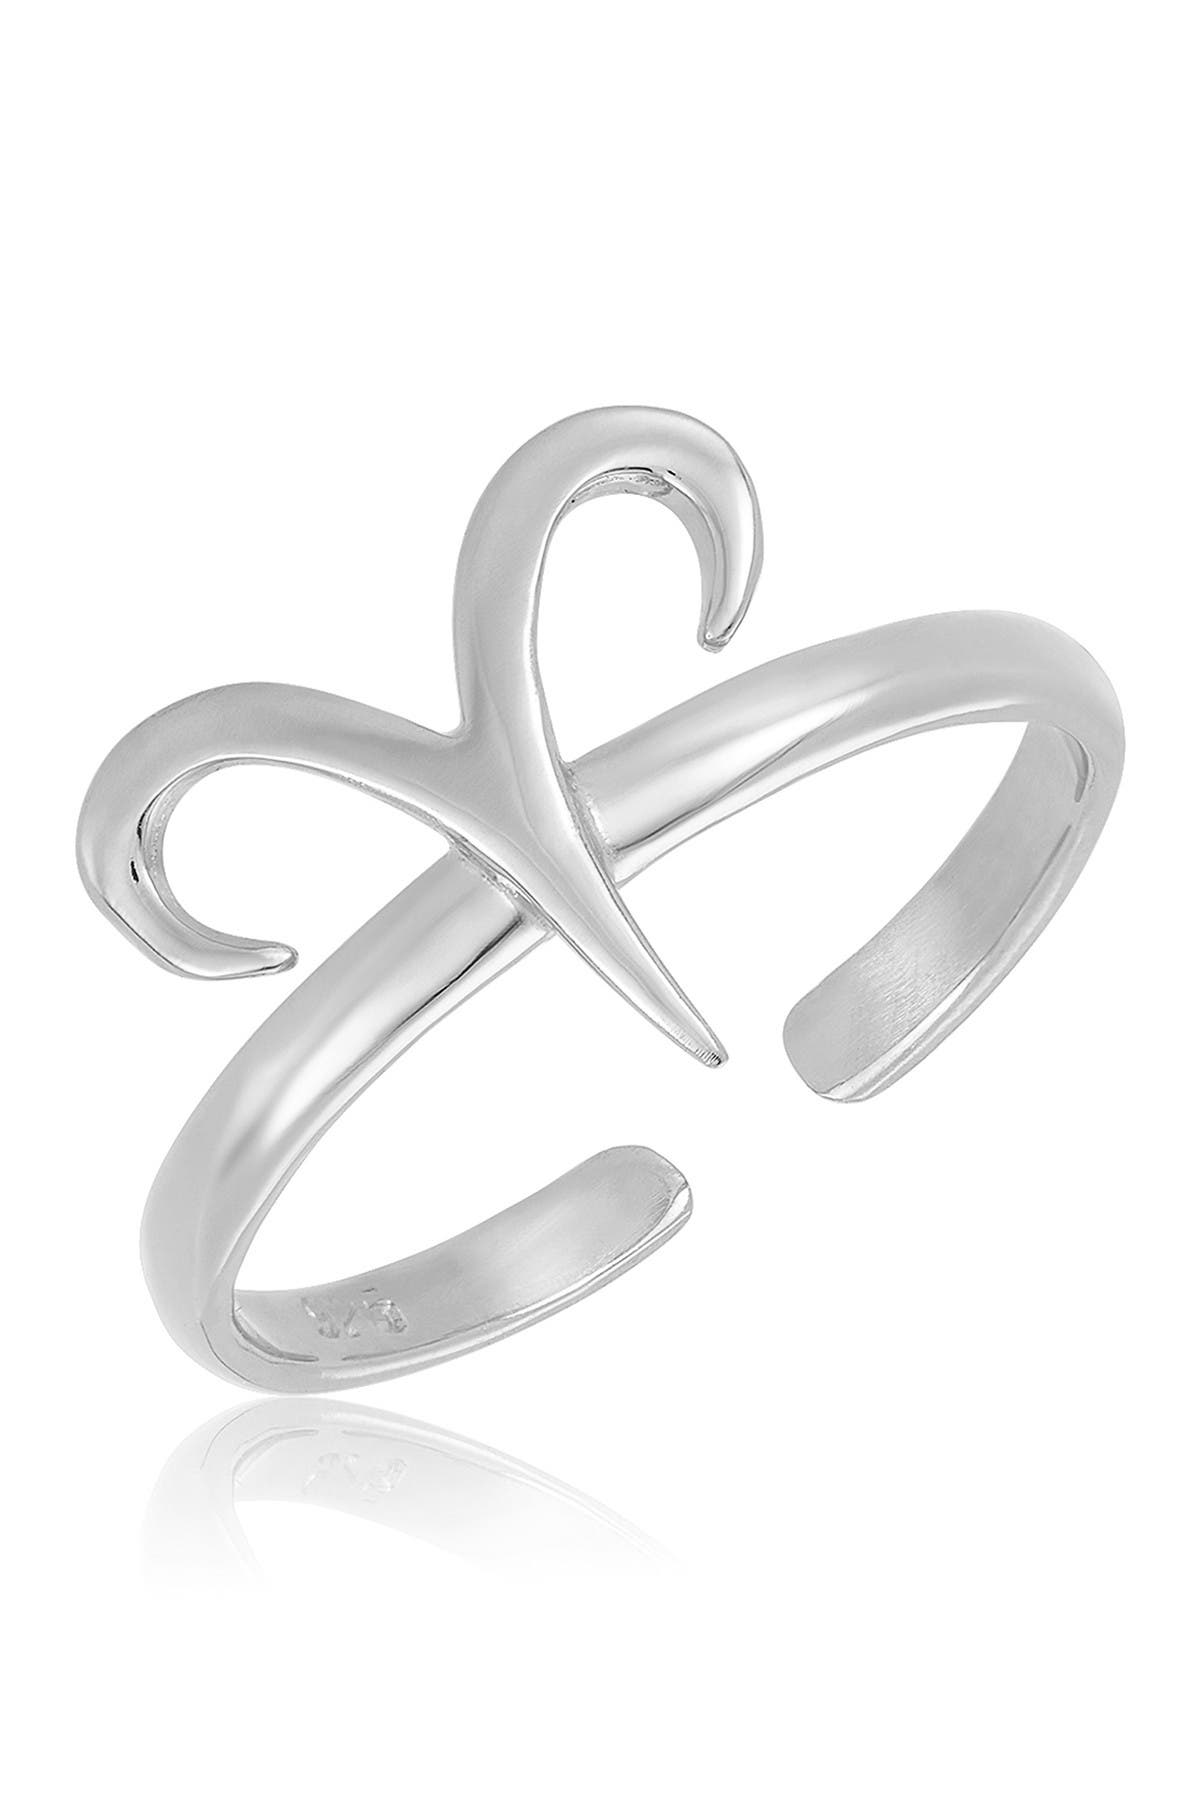 Image of Sterling Forever Sterling Silver Adjustable Zodiac Ring - Aries